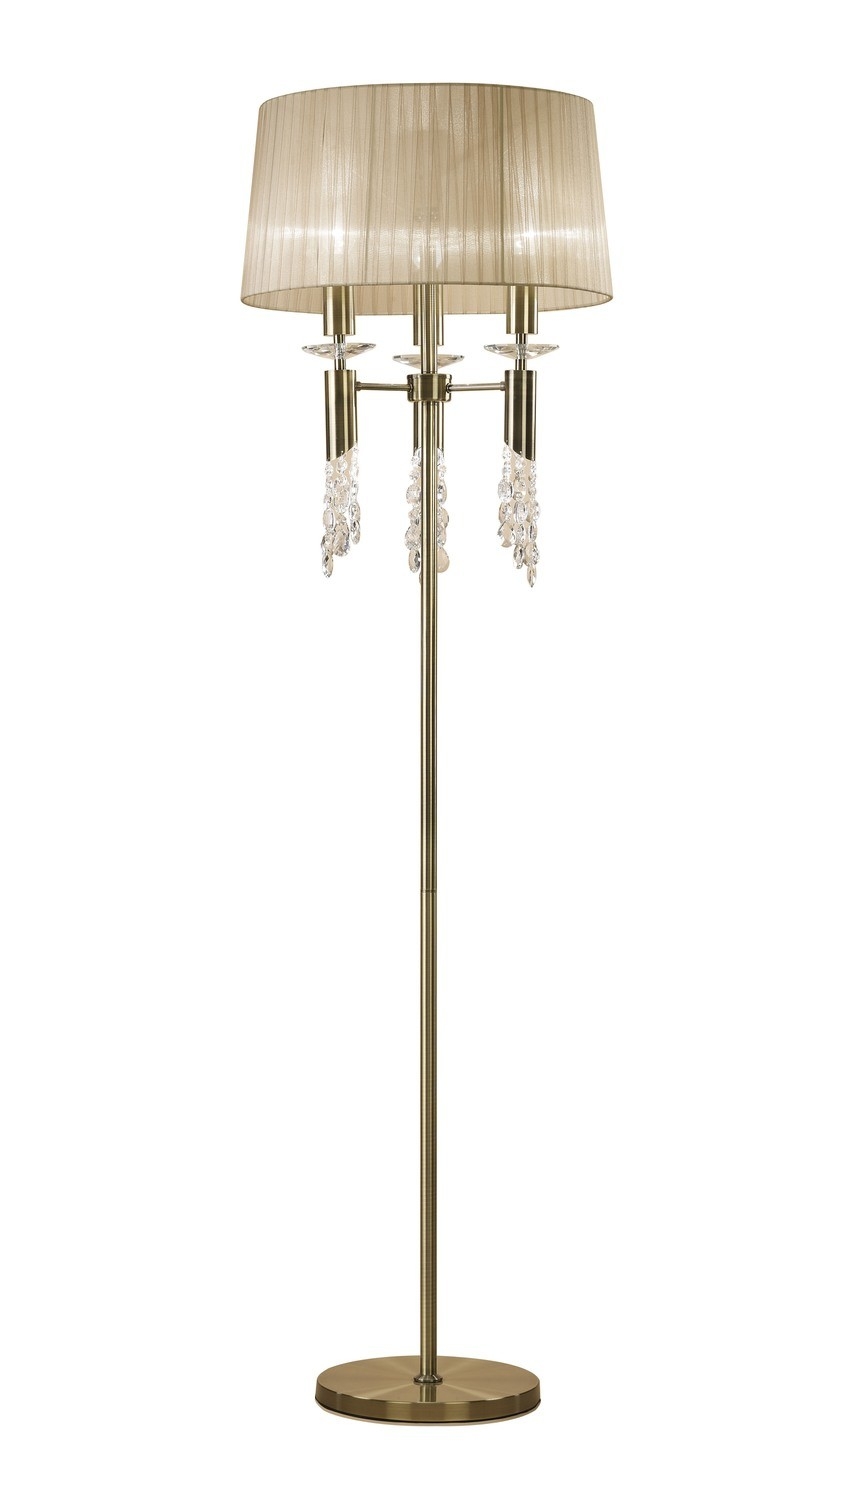 Tiffany Floor Lamp 3+3 Light E27+G9, Antique Brass With Clear Crystal